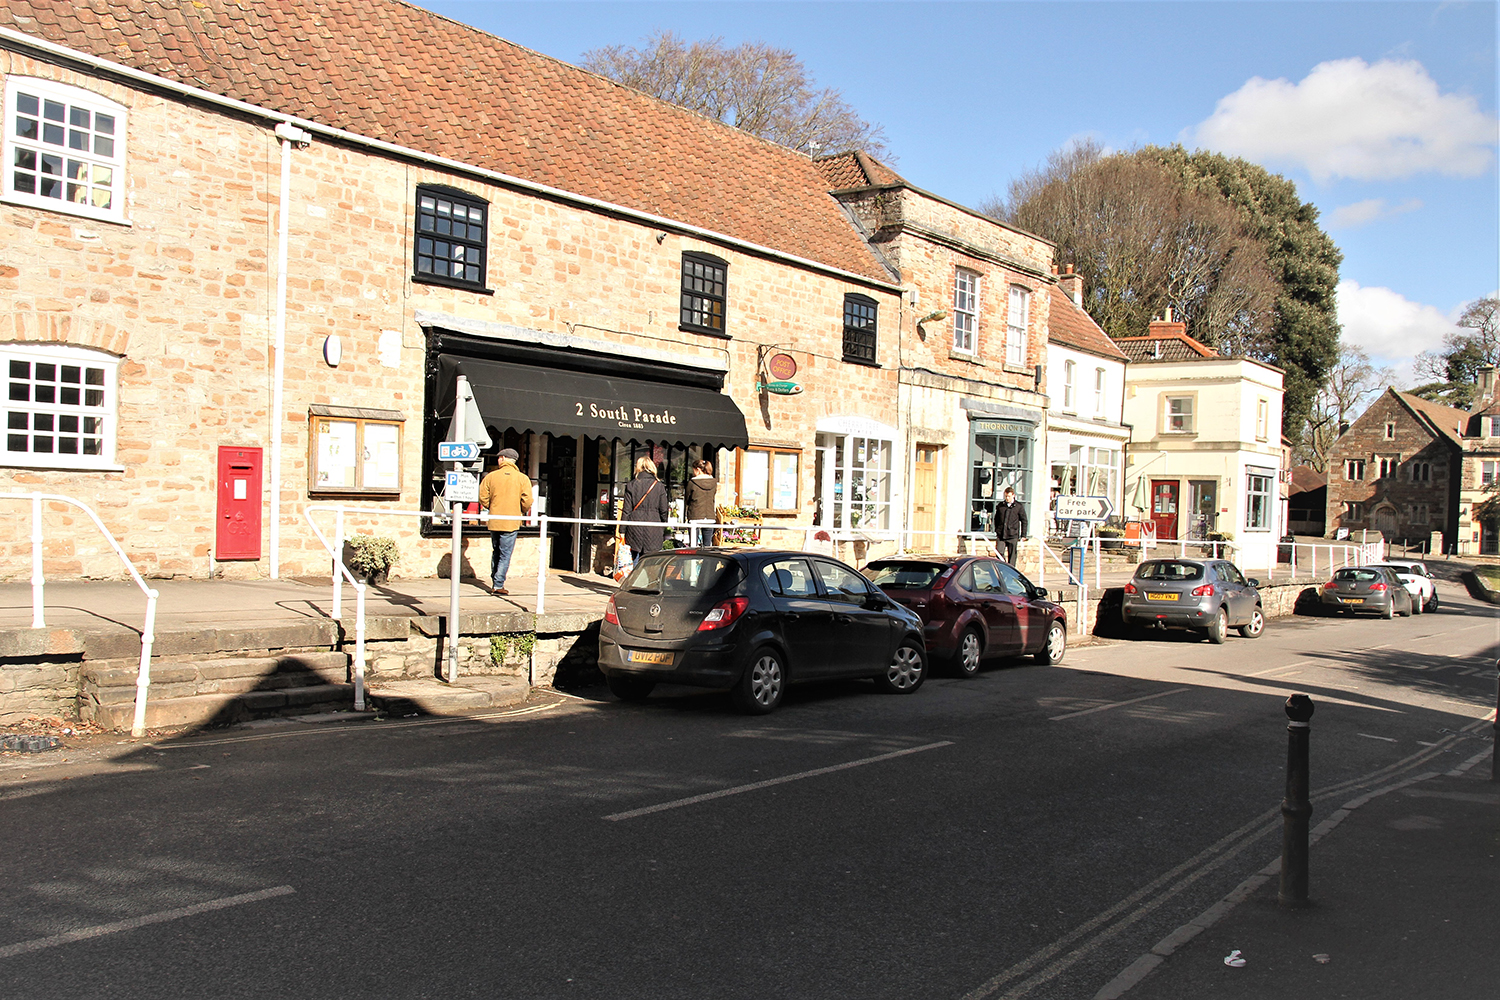 Image of Chew Magna village near Bristol